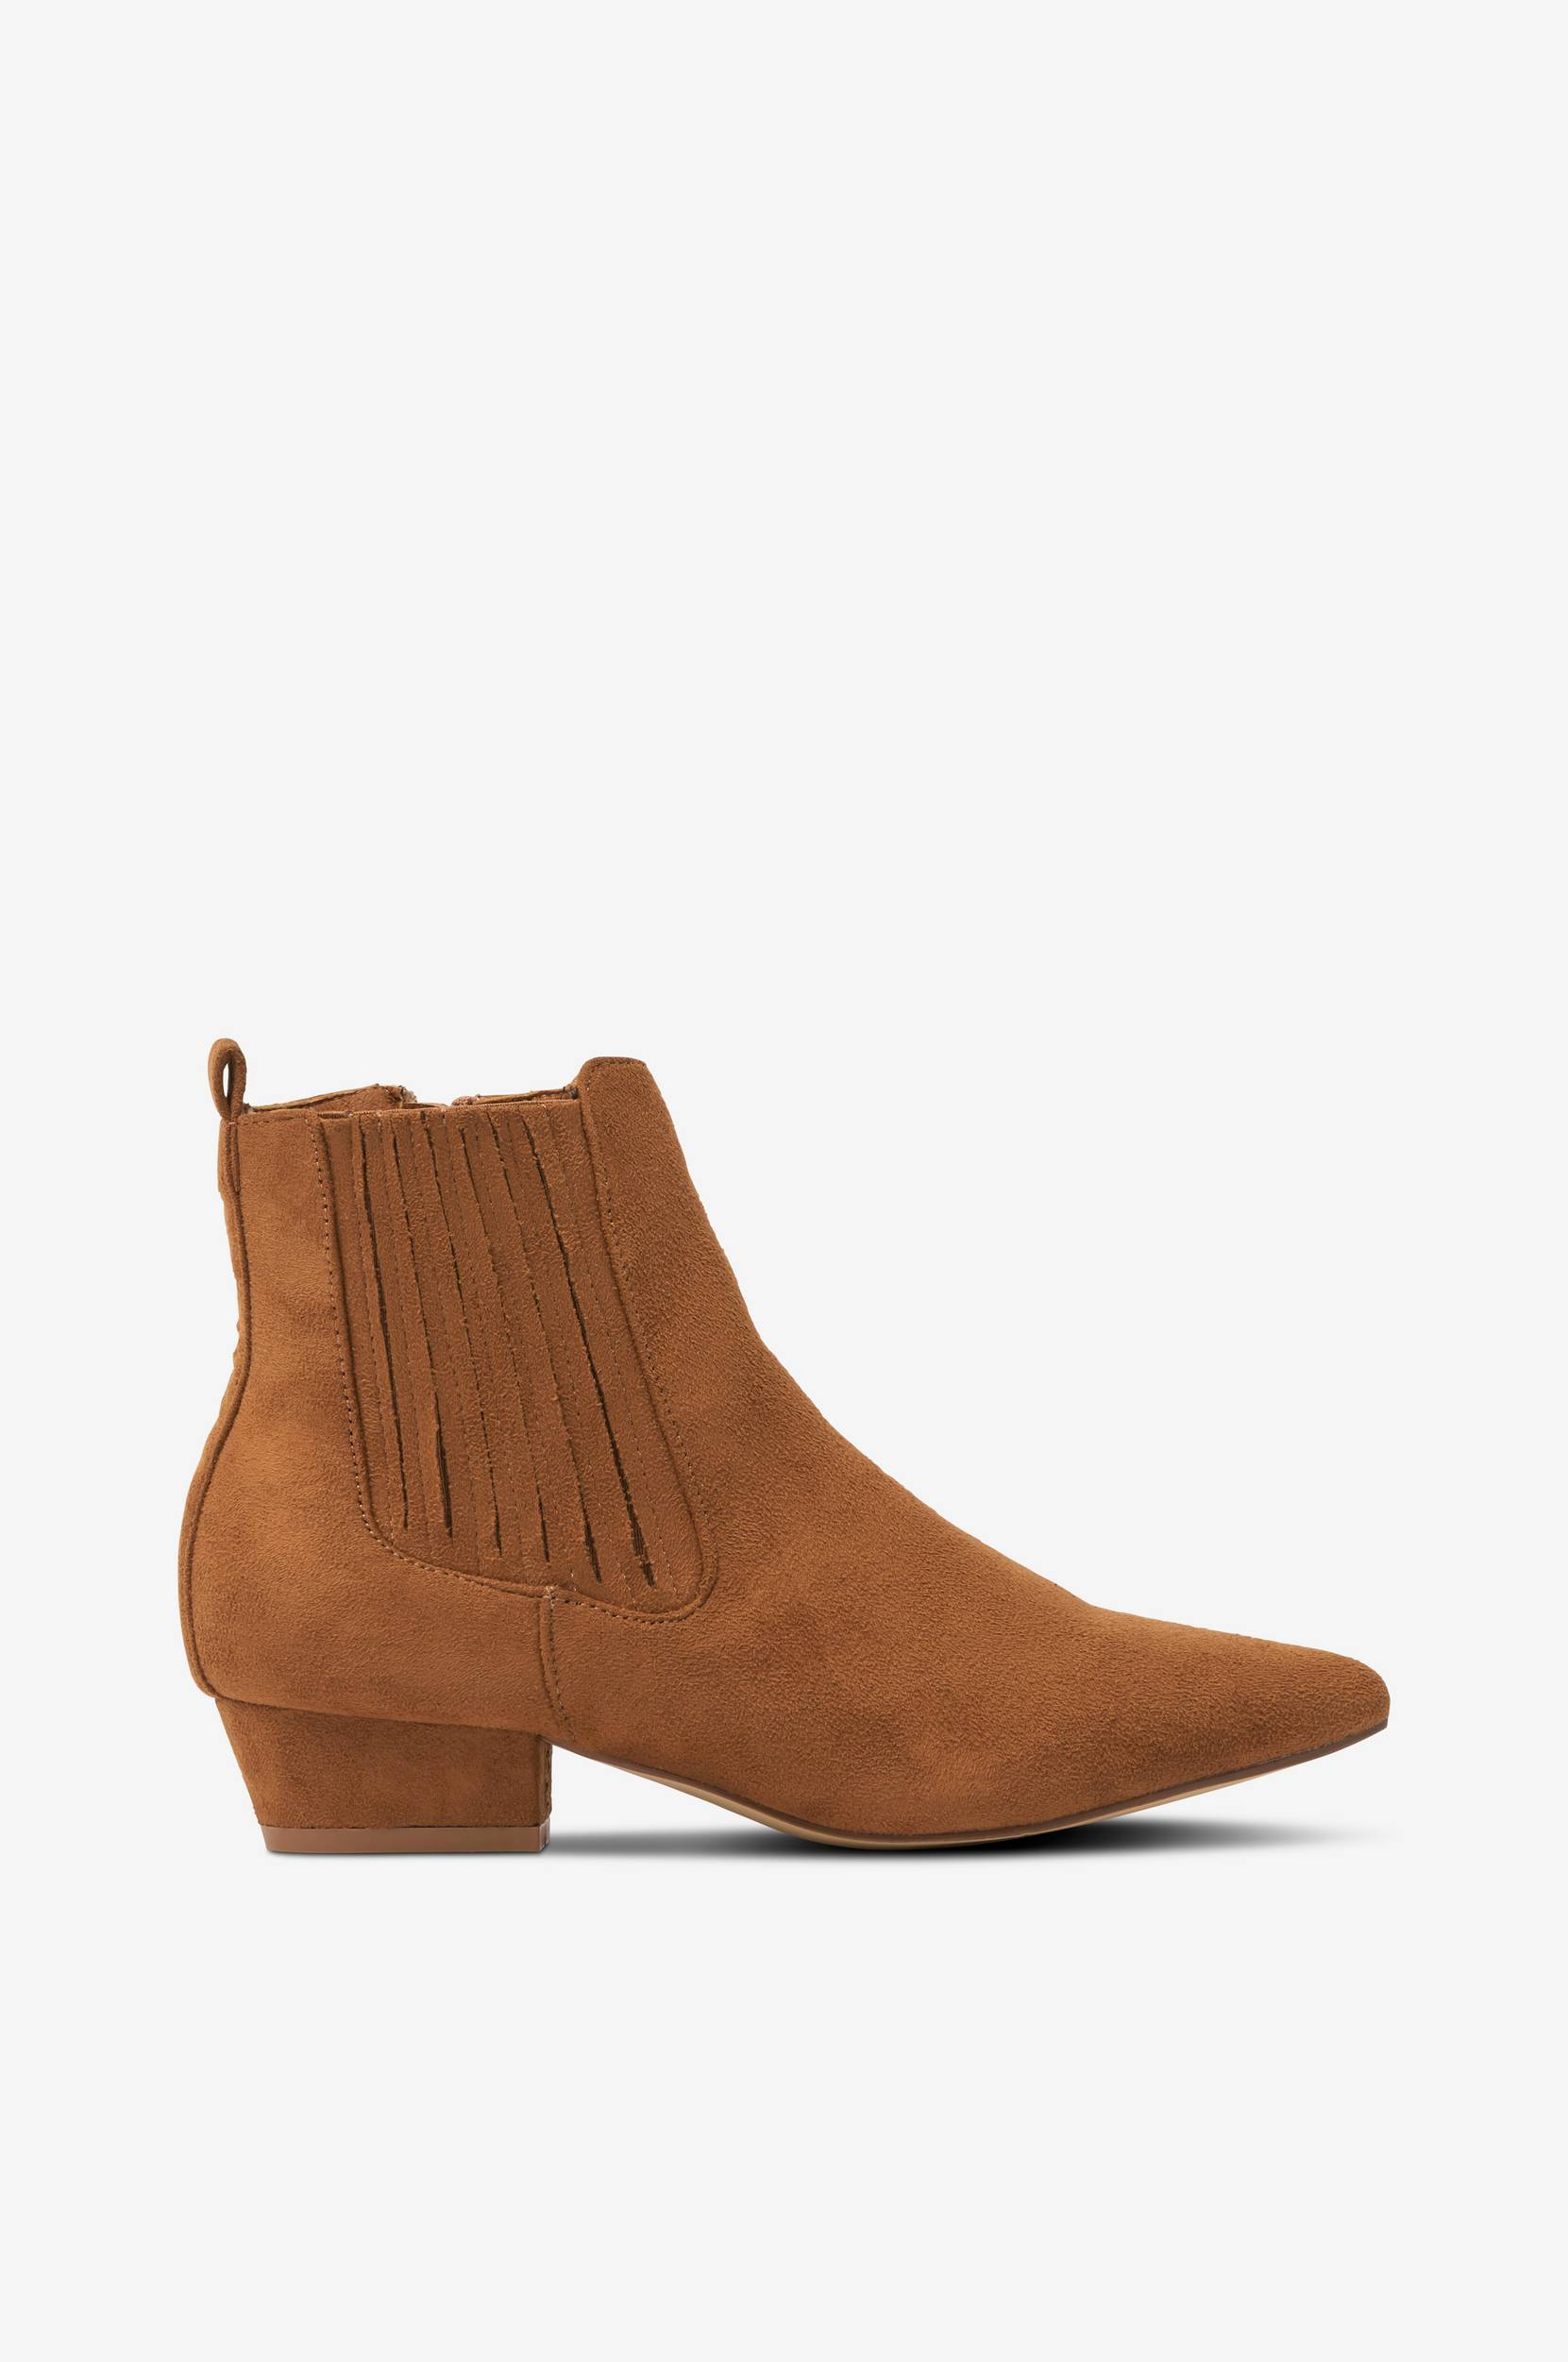 Duffy - Boots - Natur